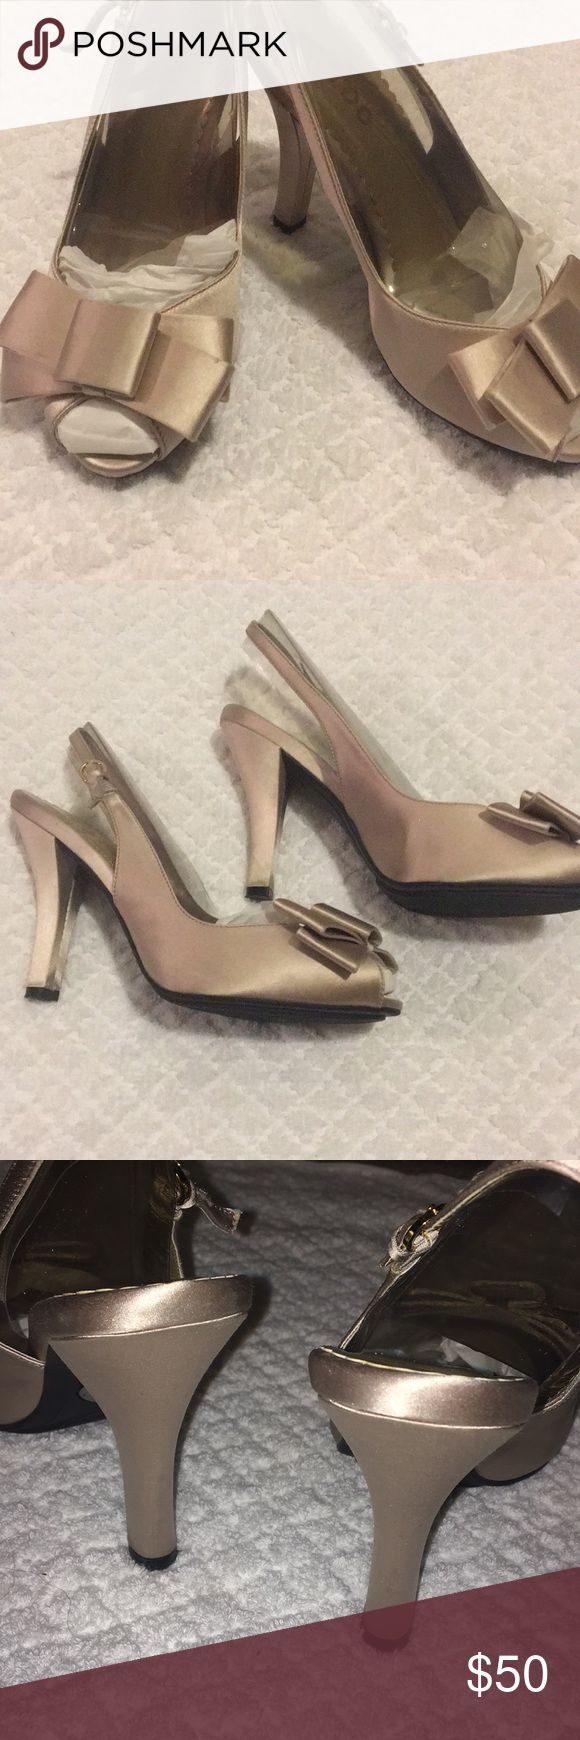 Shoes Champagne color shoes, worn once on wedding day me too Shoes Heels